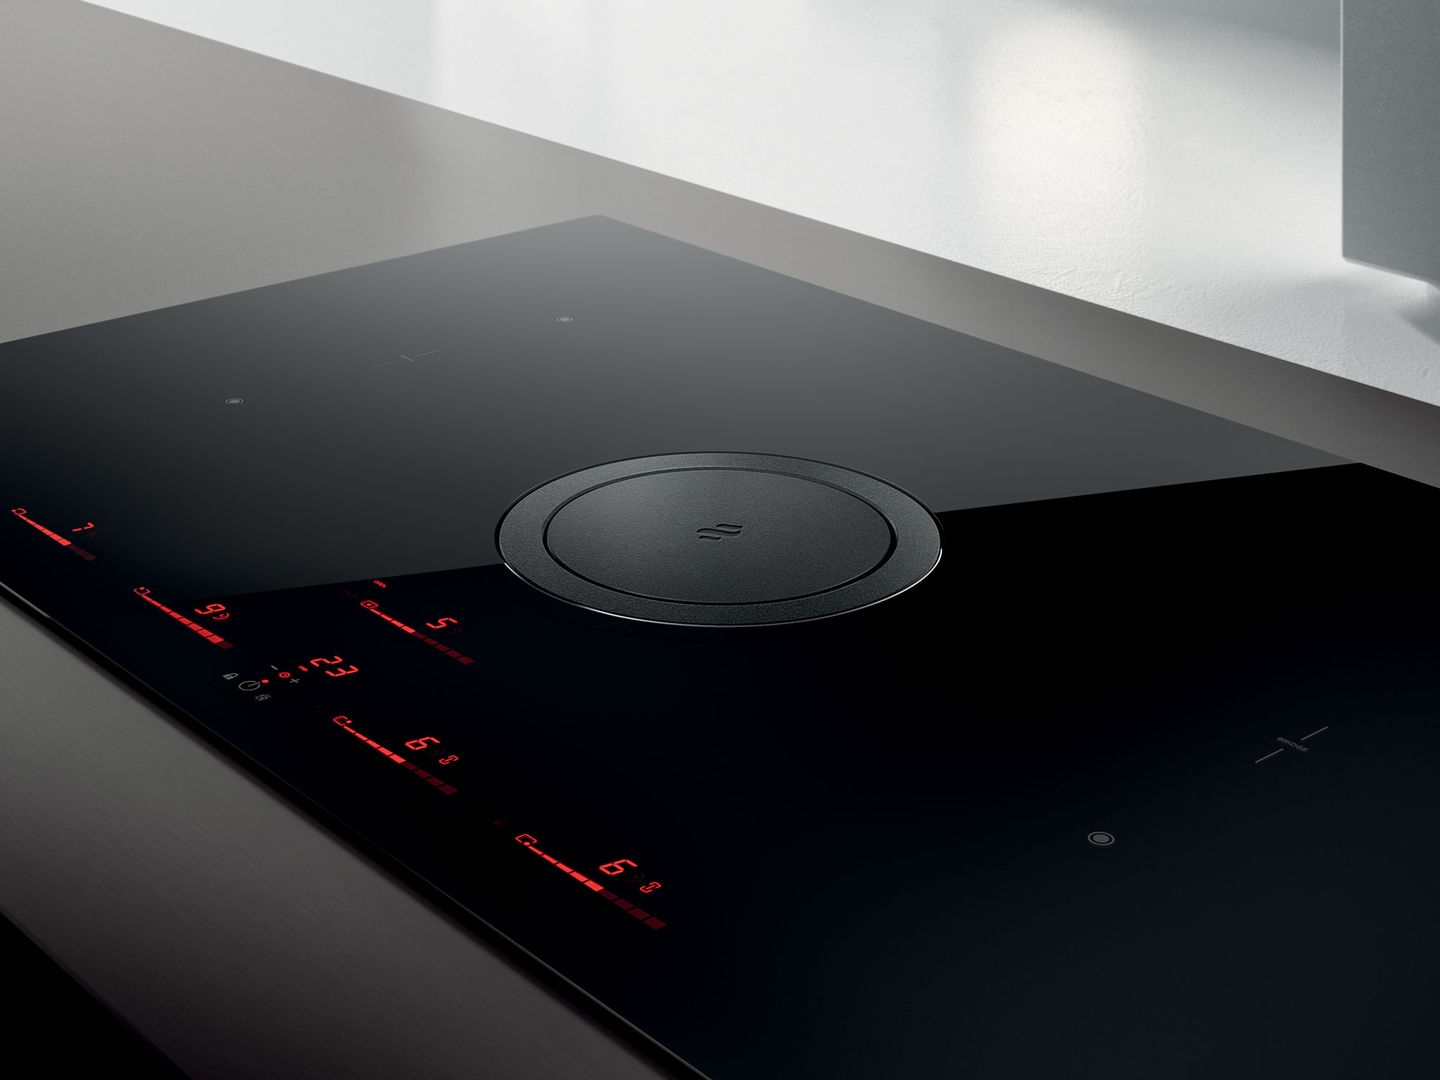 Elica NIKOSWITCHDUCTBL Nikolatesla Switch Induction Hob-Black-Duct Out